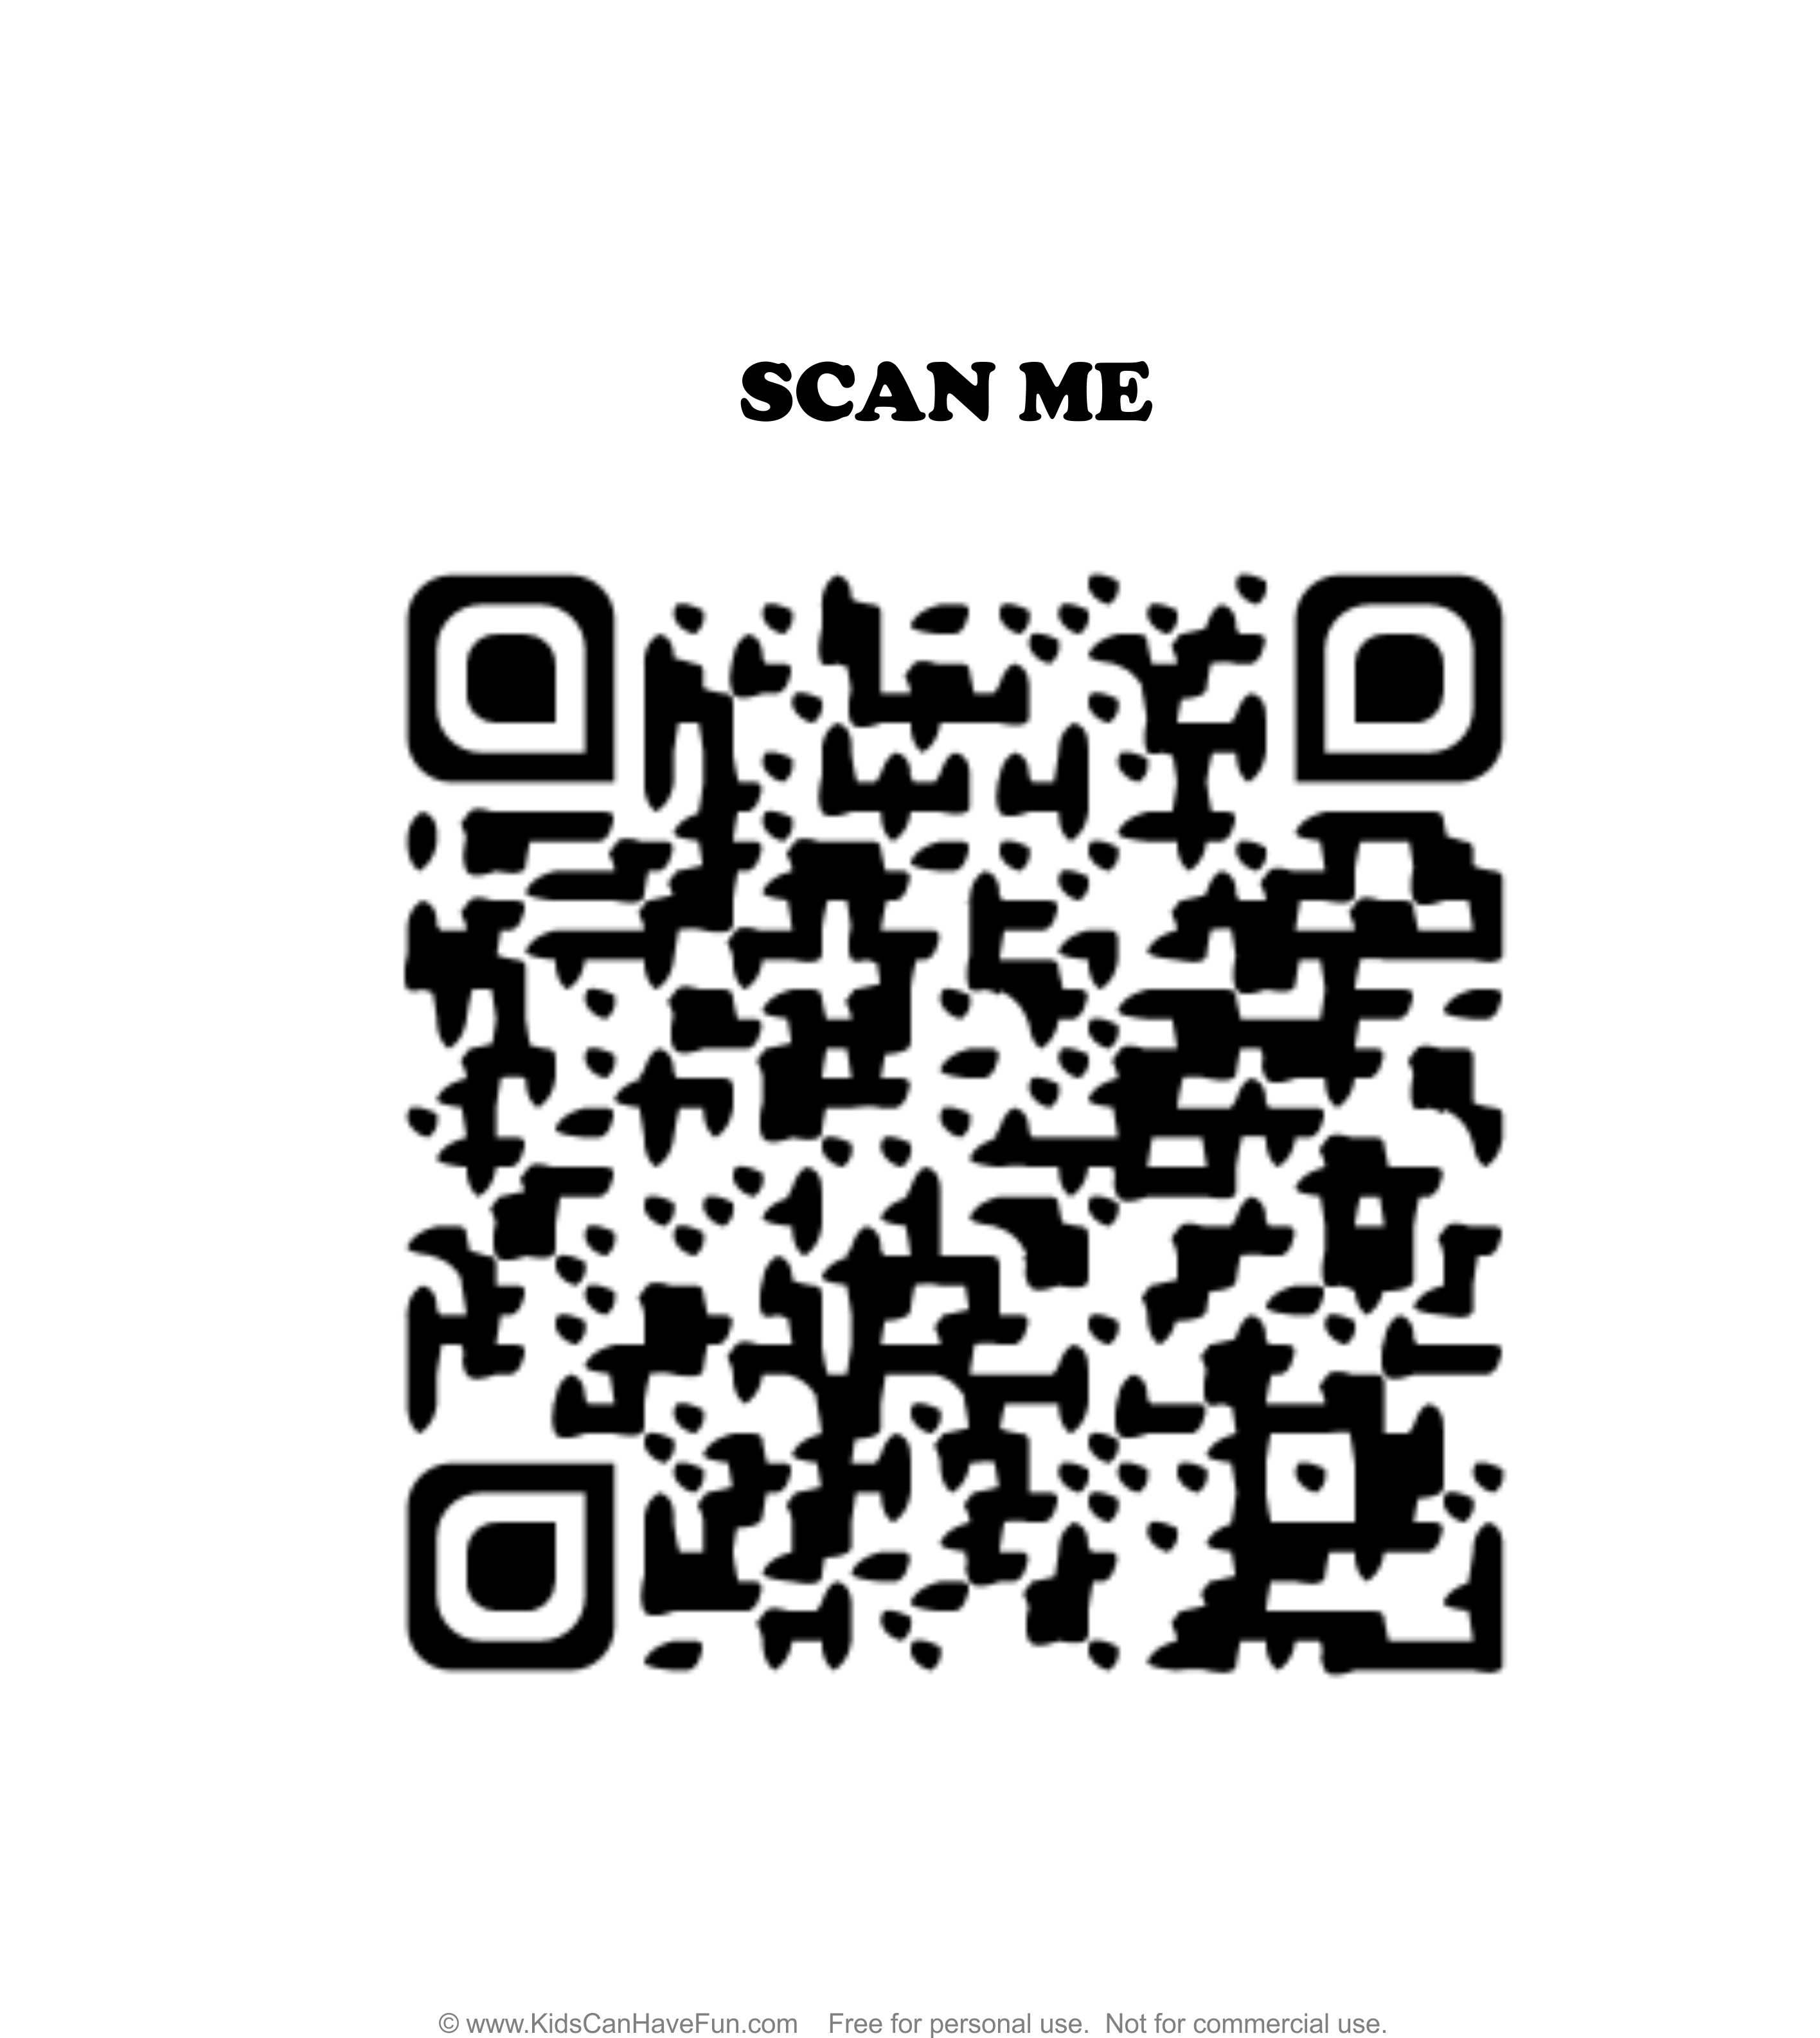 No Bullying Allowed Scan Me Qr Code Wall Sign Httpwww